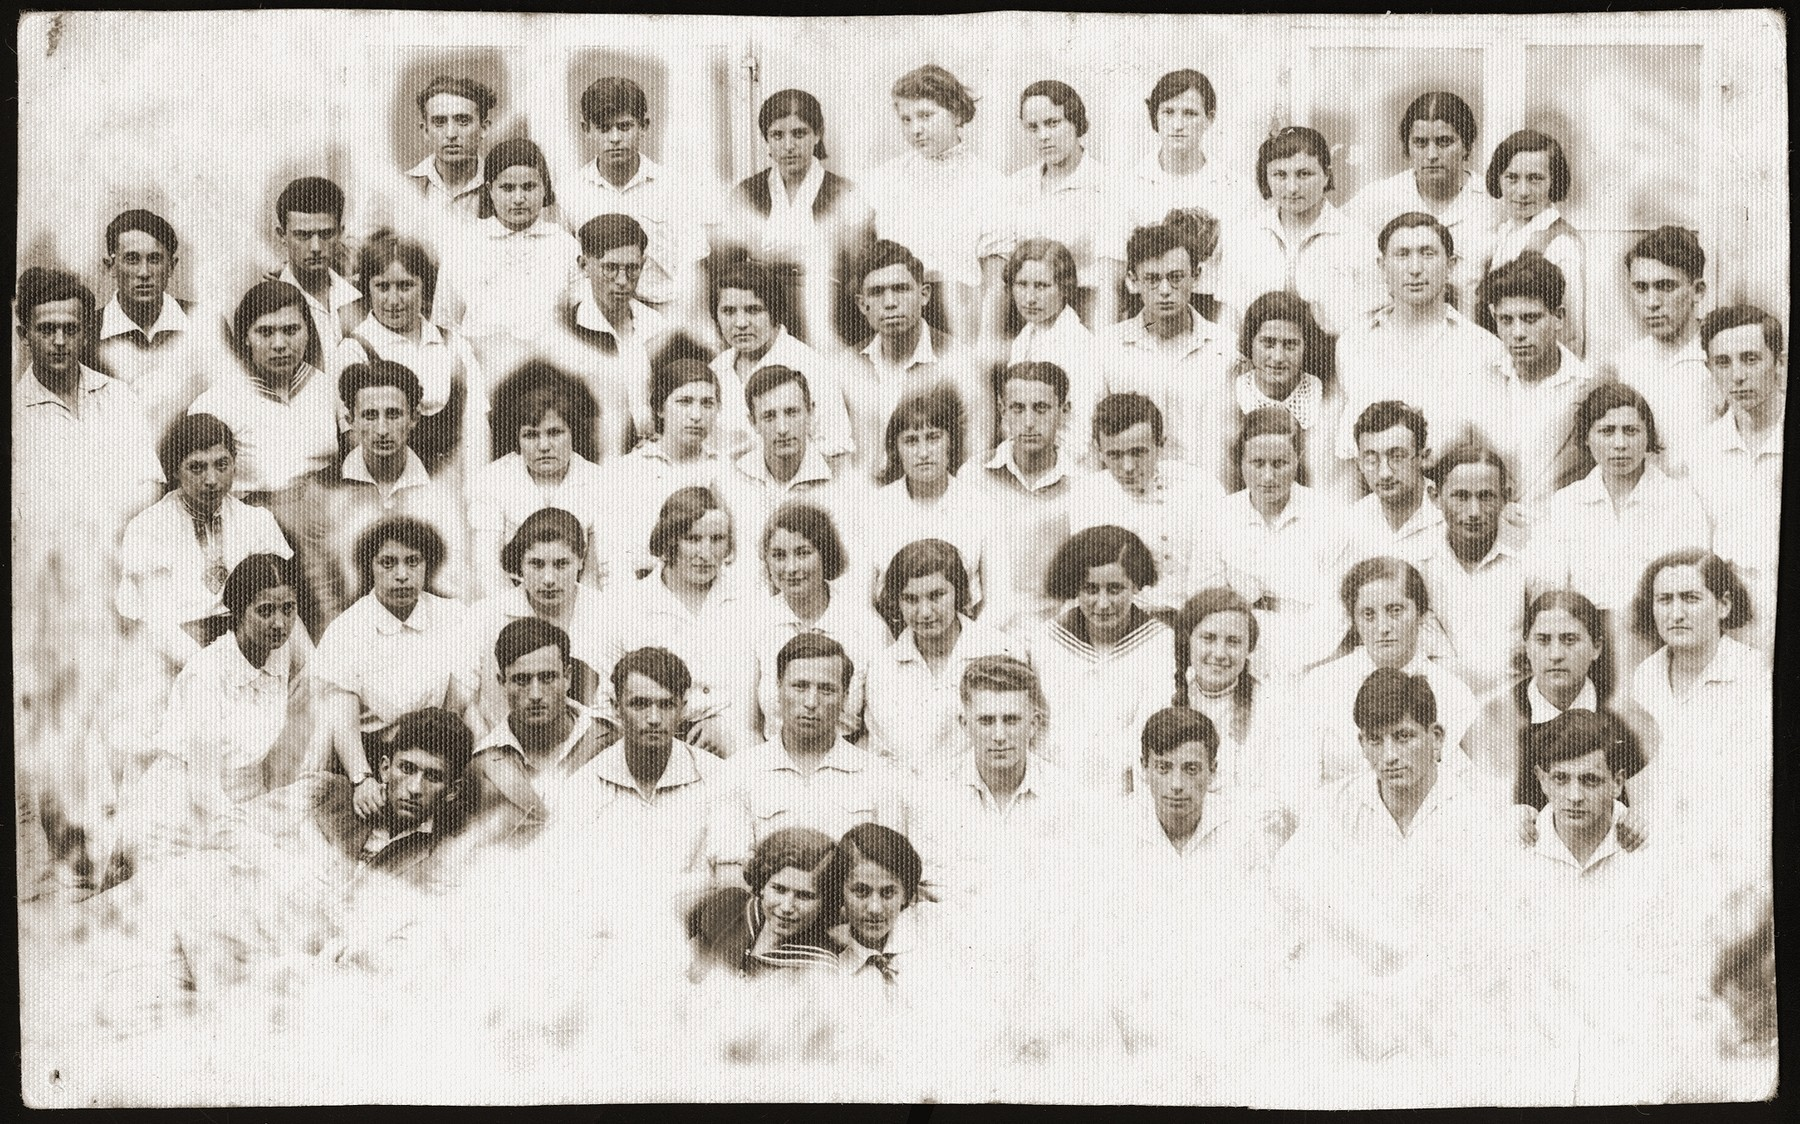 Group portrait of members of the Hashomer Hatzair hachshara in Kalisz.   Among those pictured is Meir Orkin, a leader of the Bialystok Hashomer Hatzair group (third row from the front, on the far right), who later married Haika Grosman.